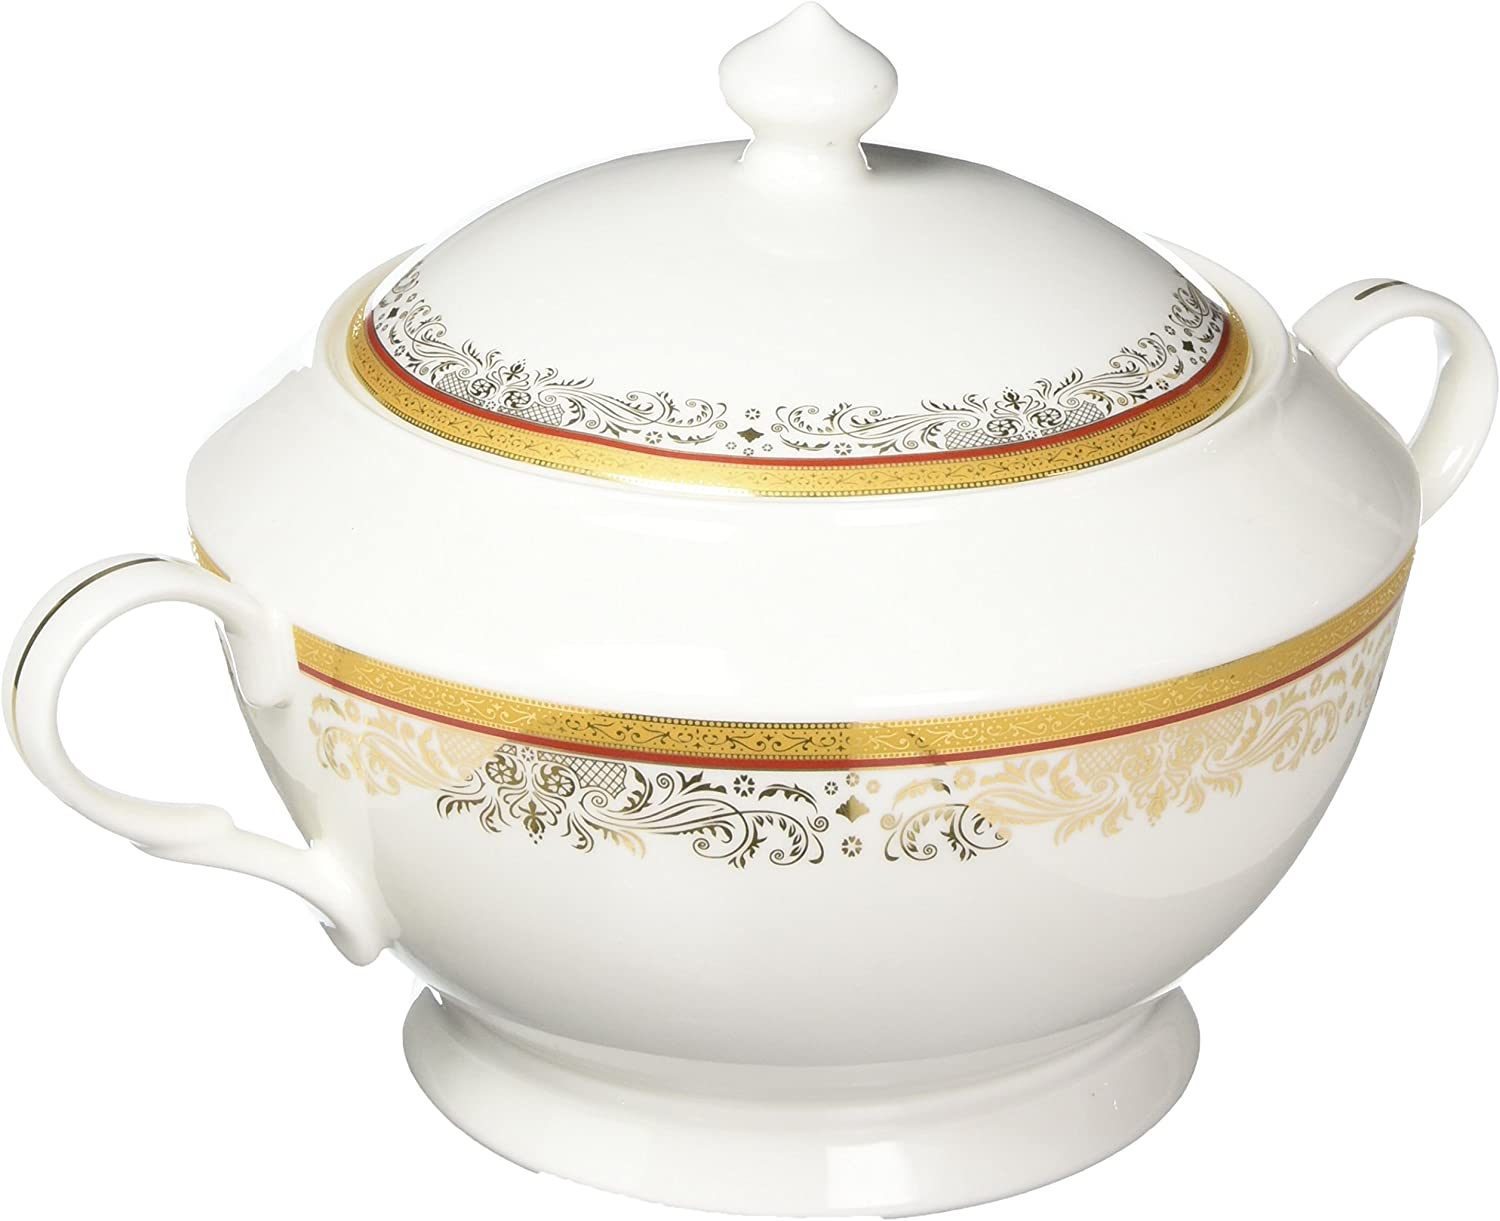 Lorenzo Import La Luna Collection Bone China Souptureen with Lid, Romina Pattern by Lorren Home Trends, Red